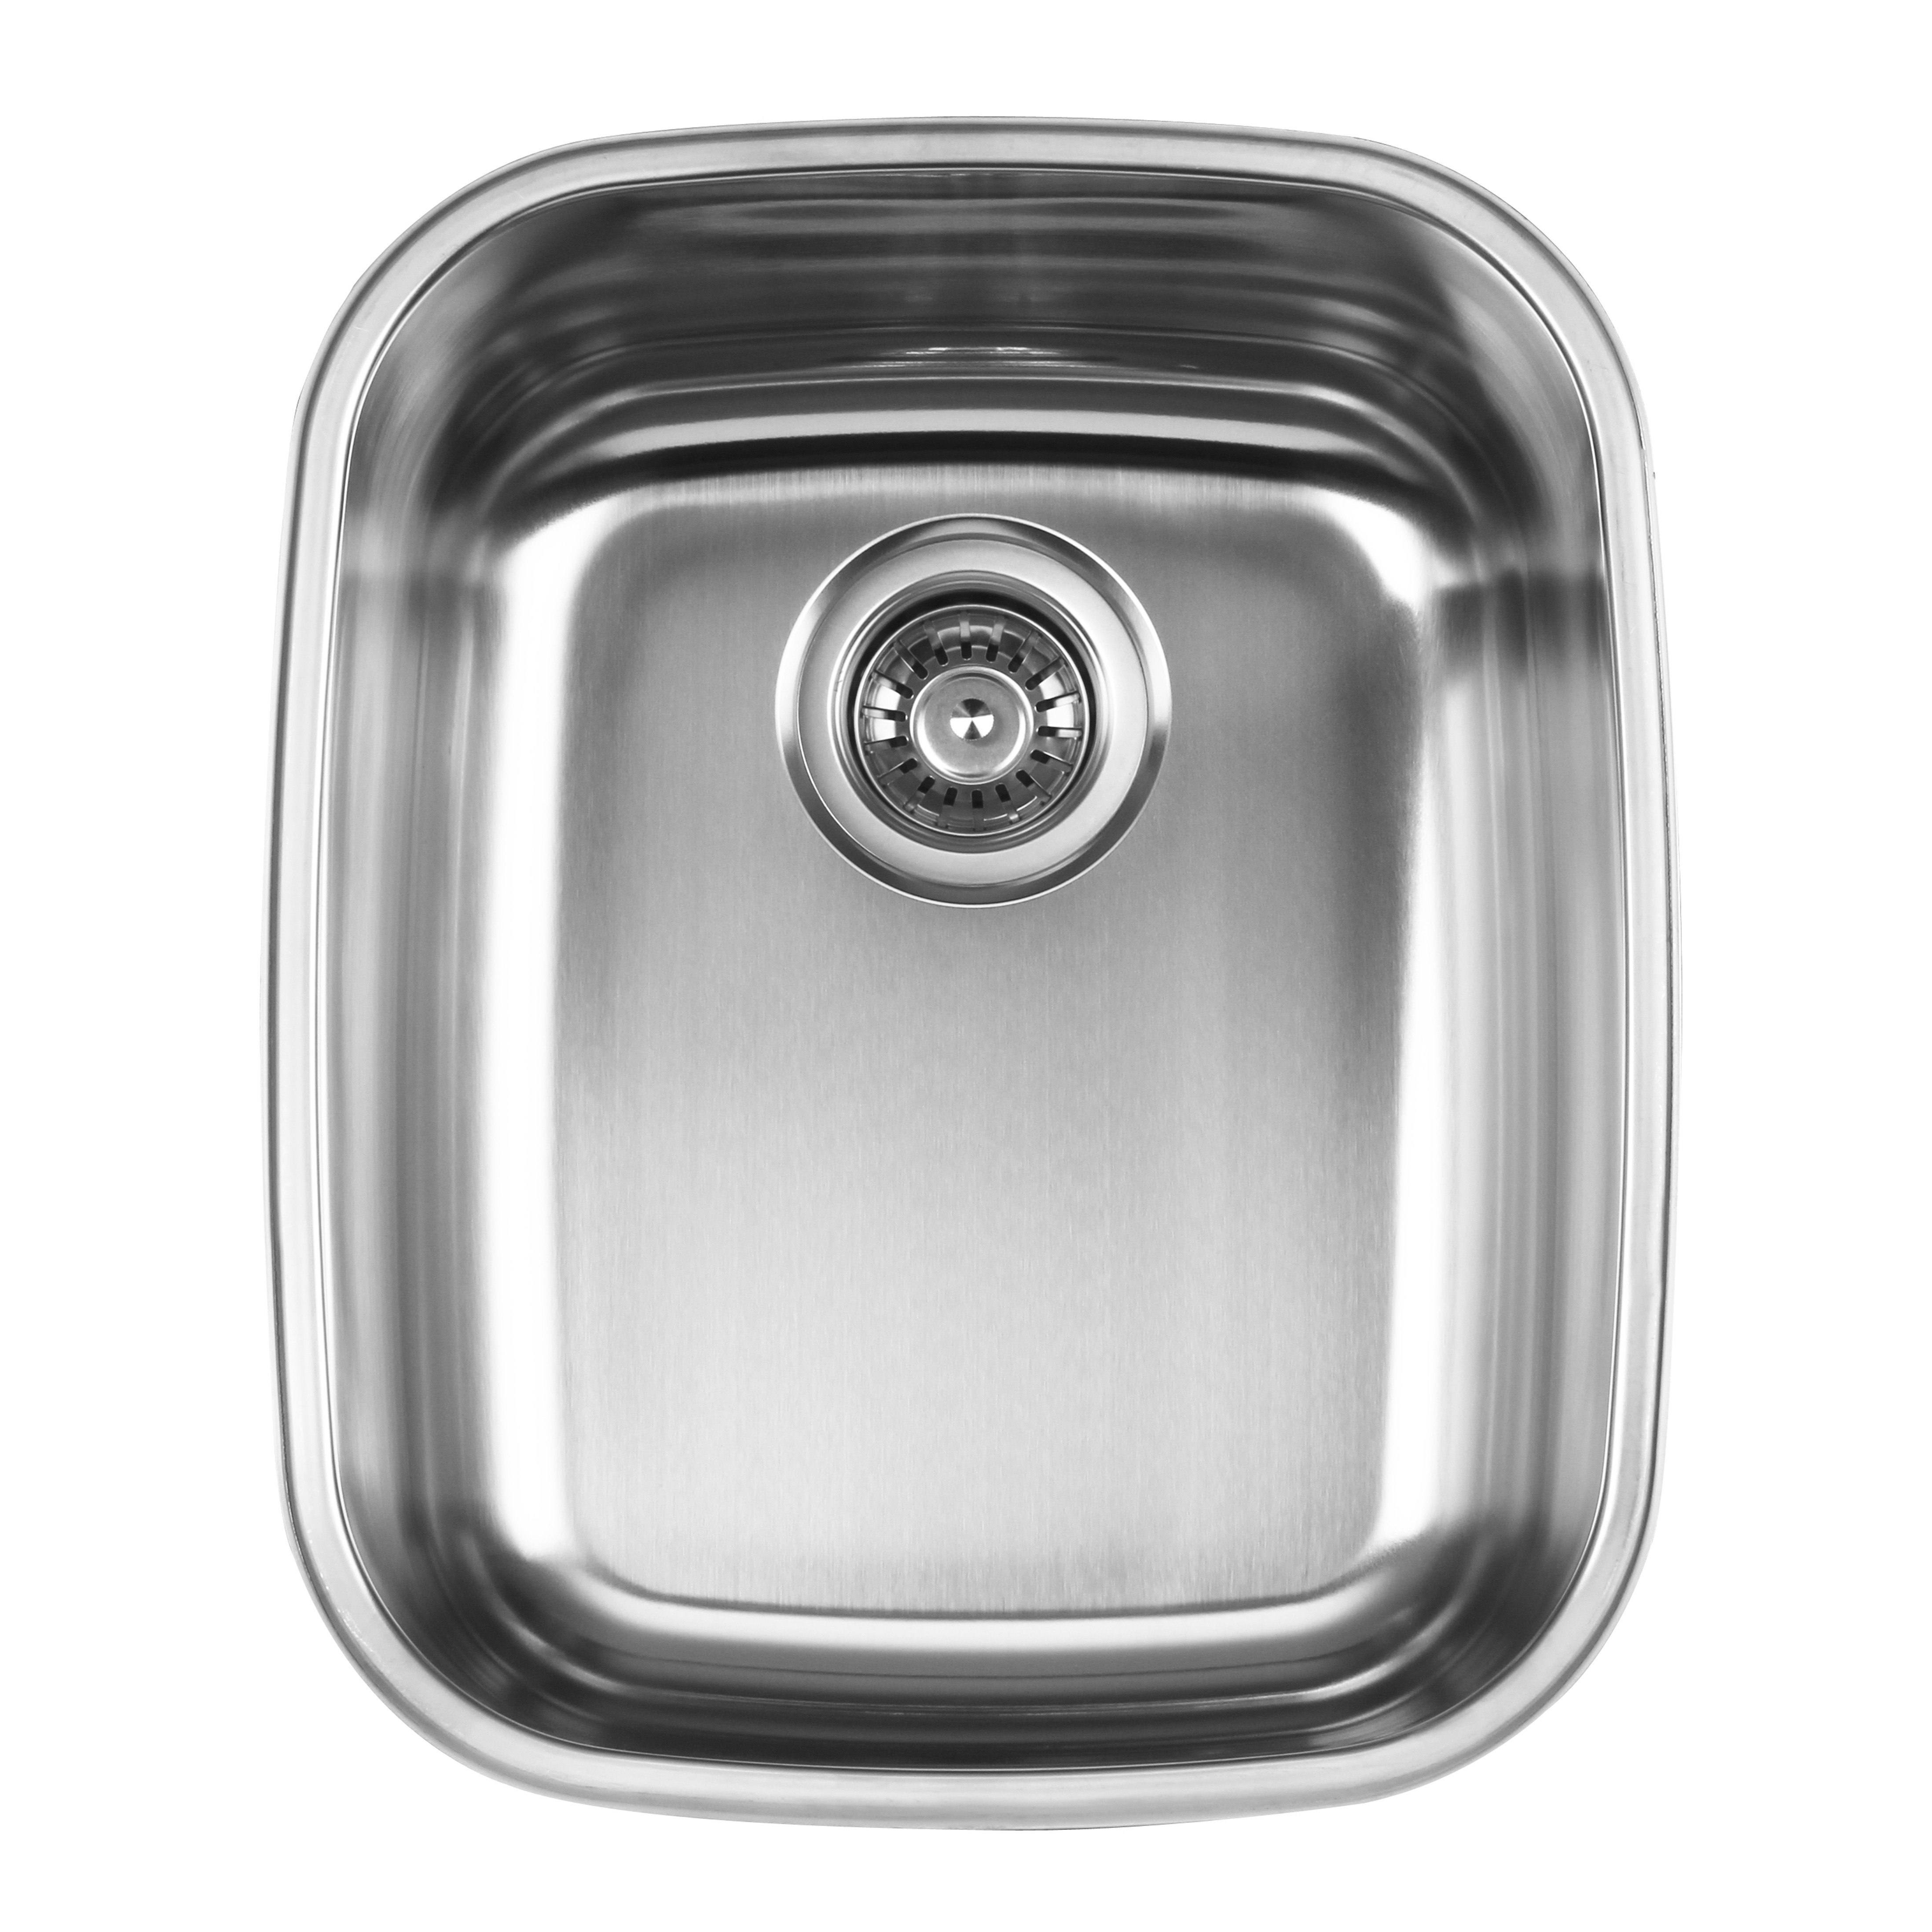 Ukinox D376.10C Undermount Single Bowl Stainless Steel Kitchen Sink With Cutting Board